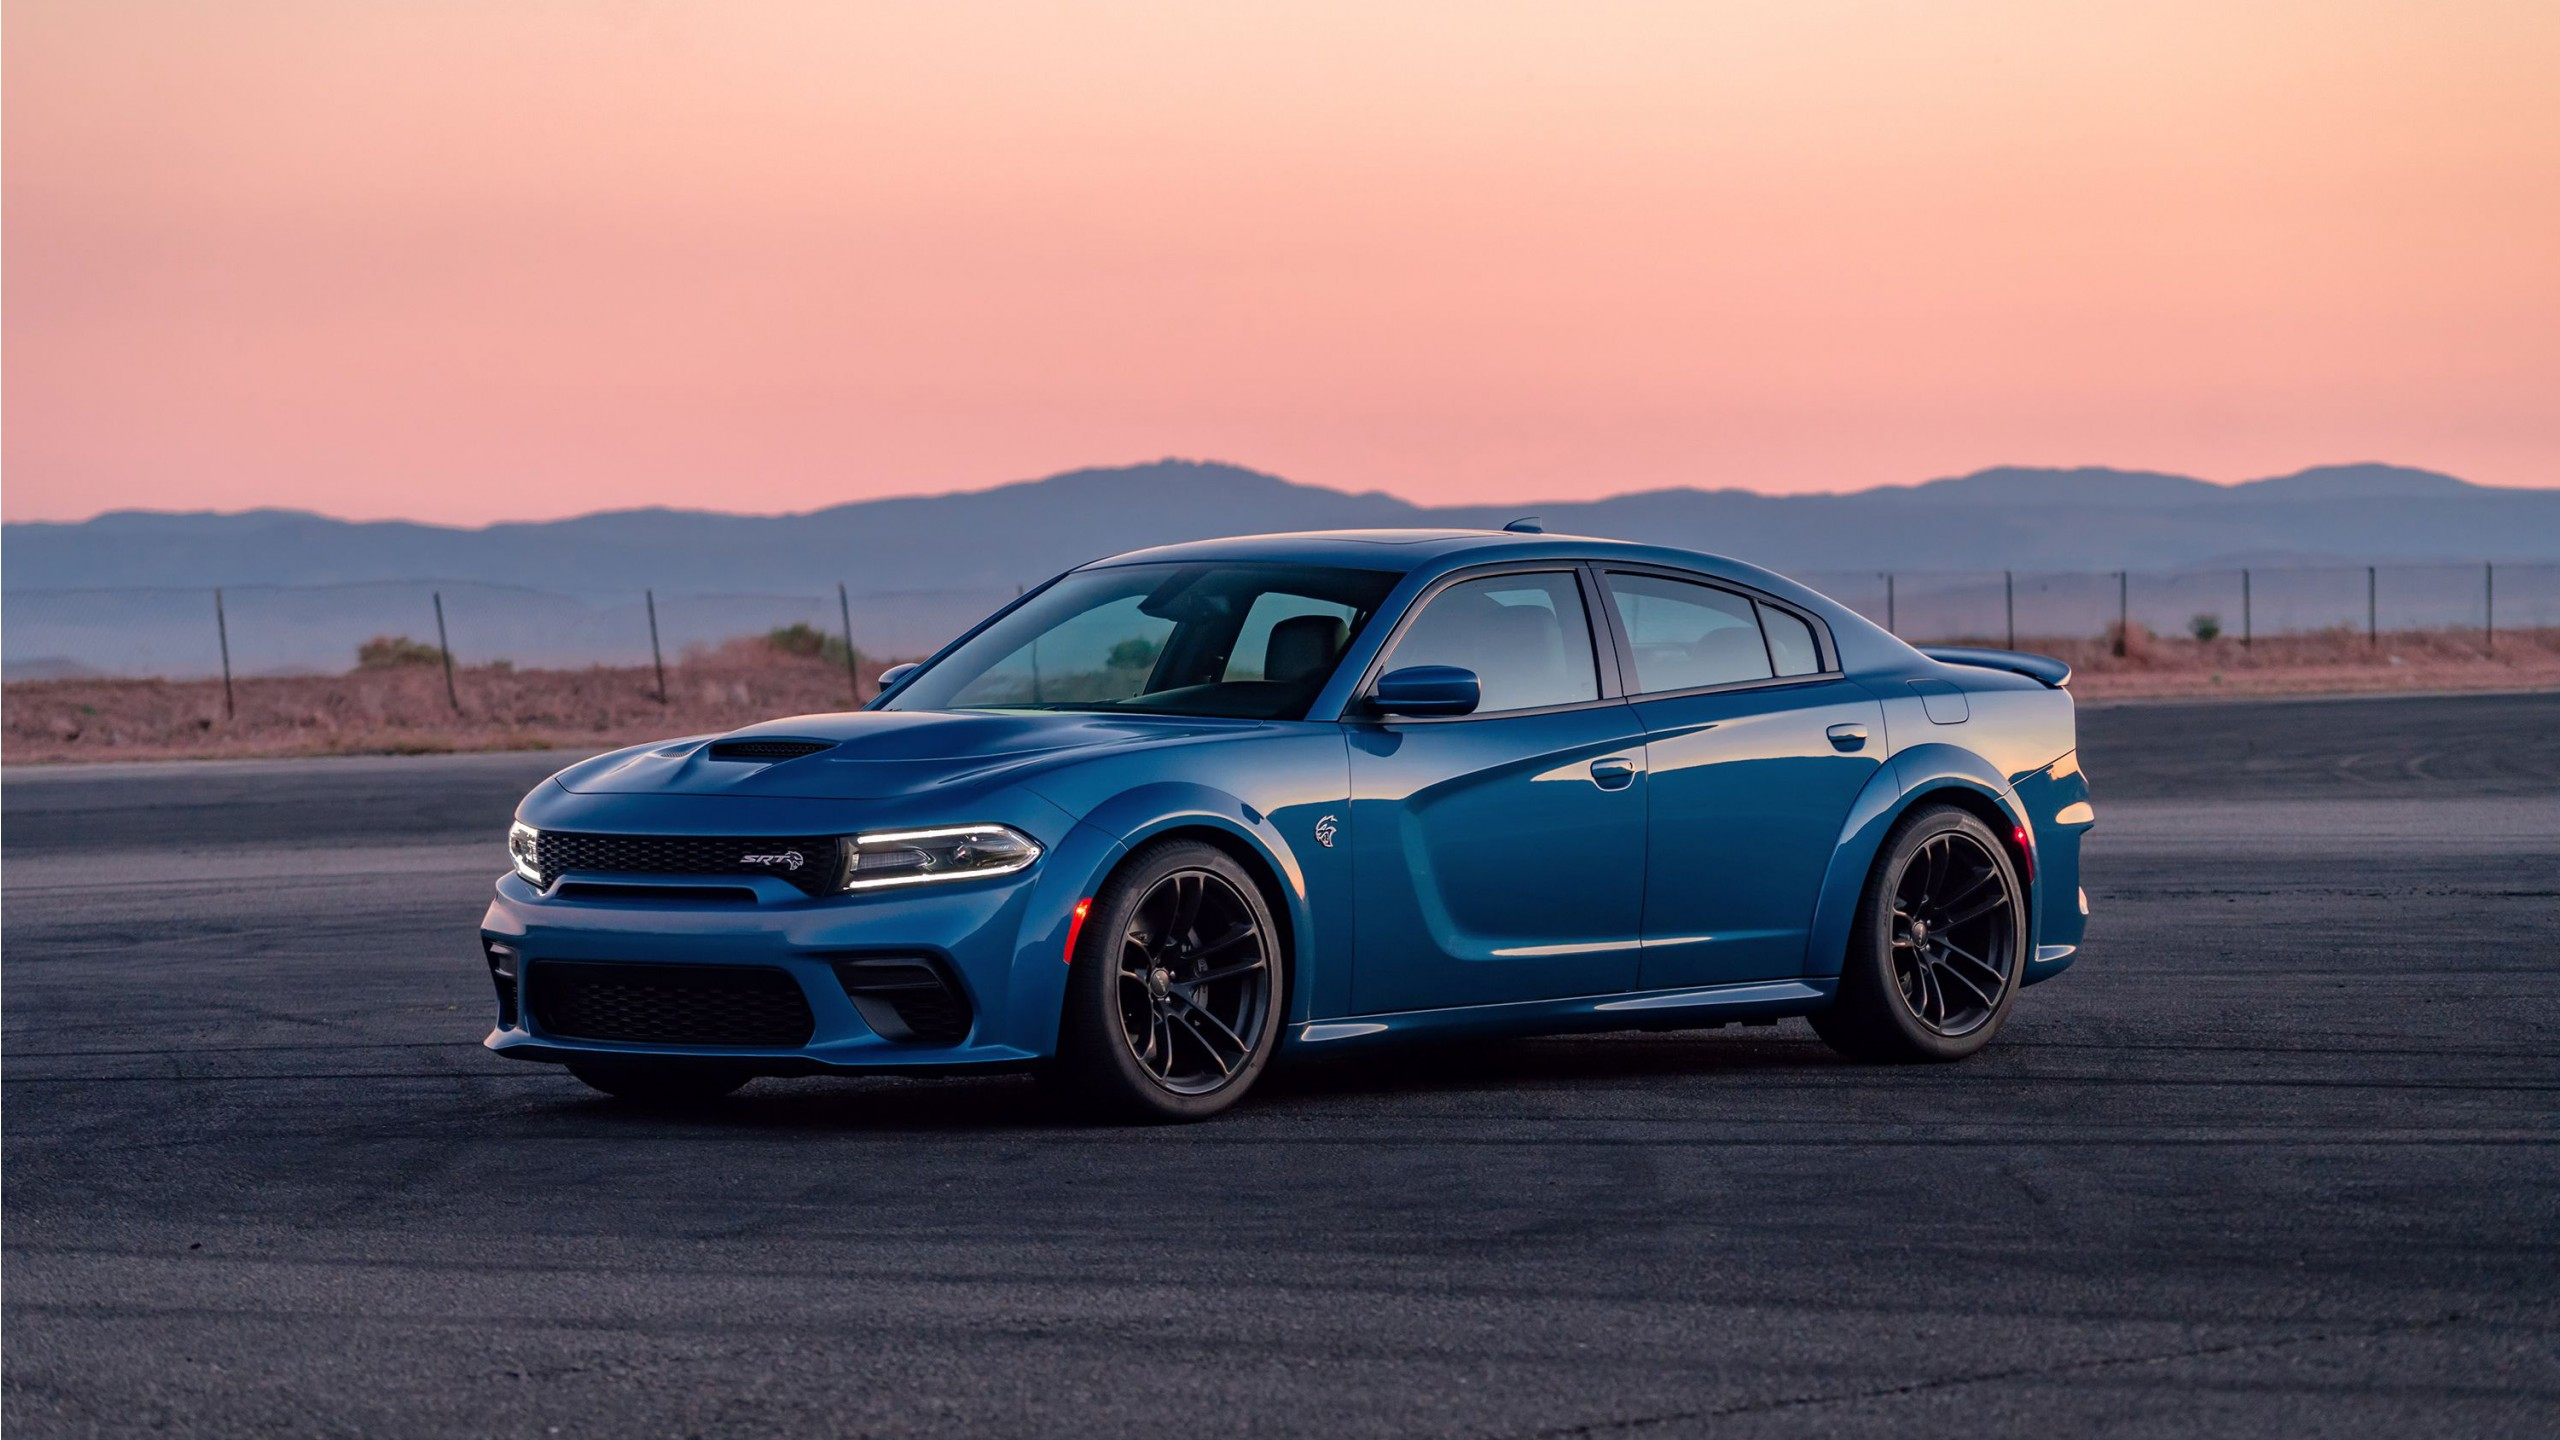 2020 Dodge Charger Srt Hellcat Widebody 4 Wallpaper Hd